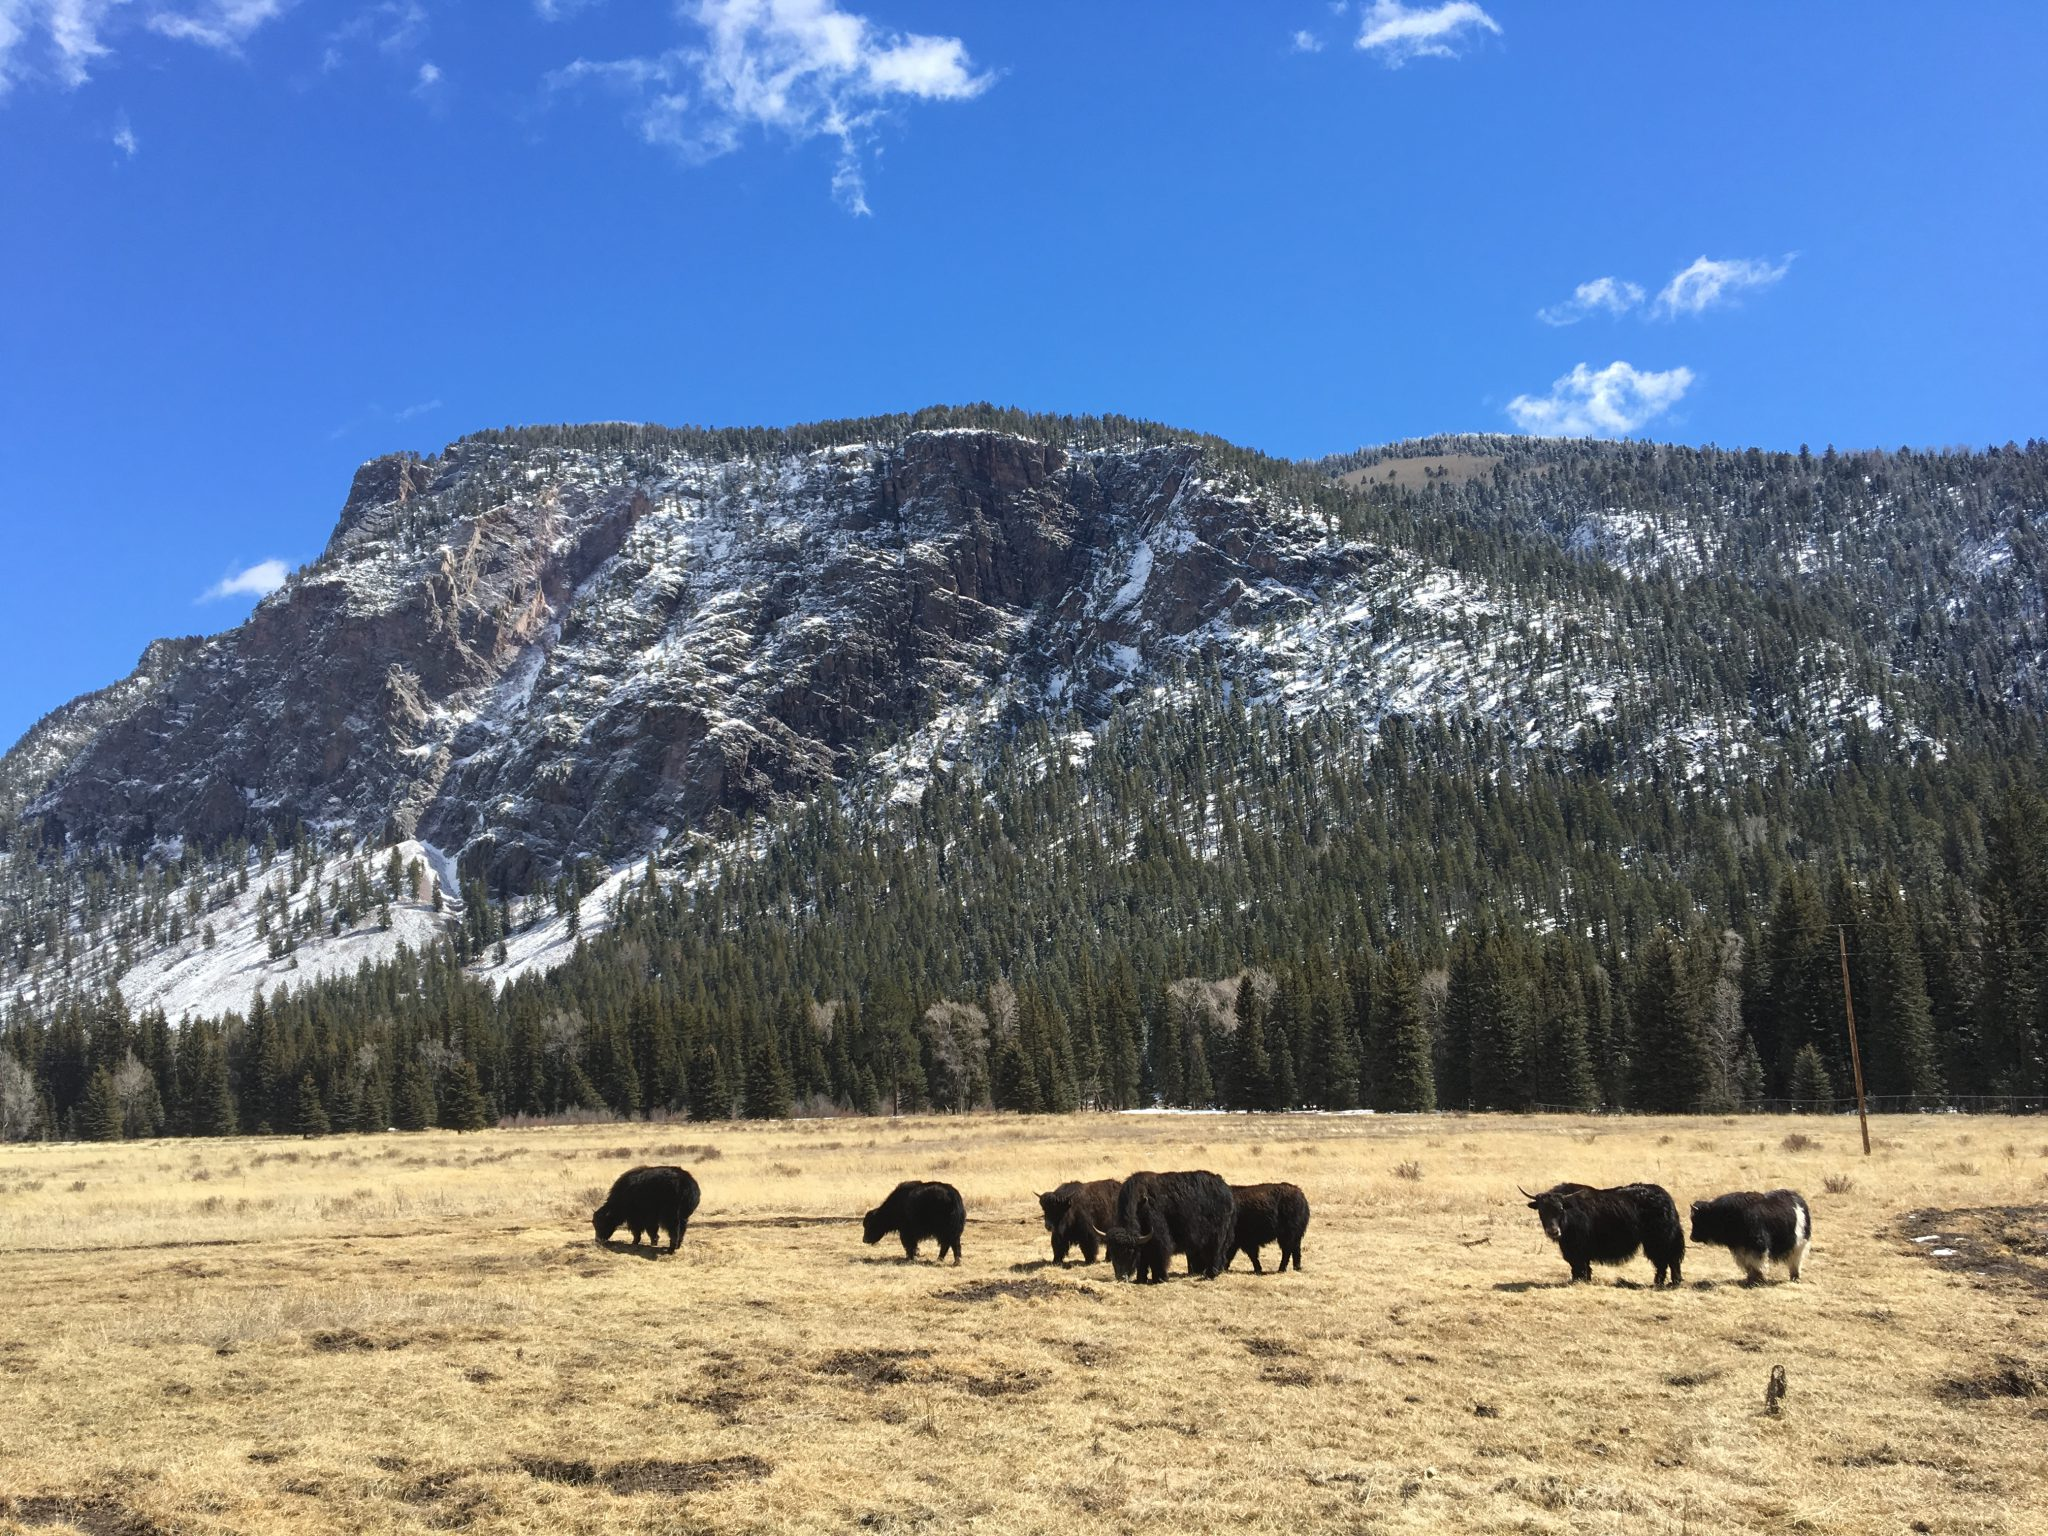 Yaks in meadow with mountains